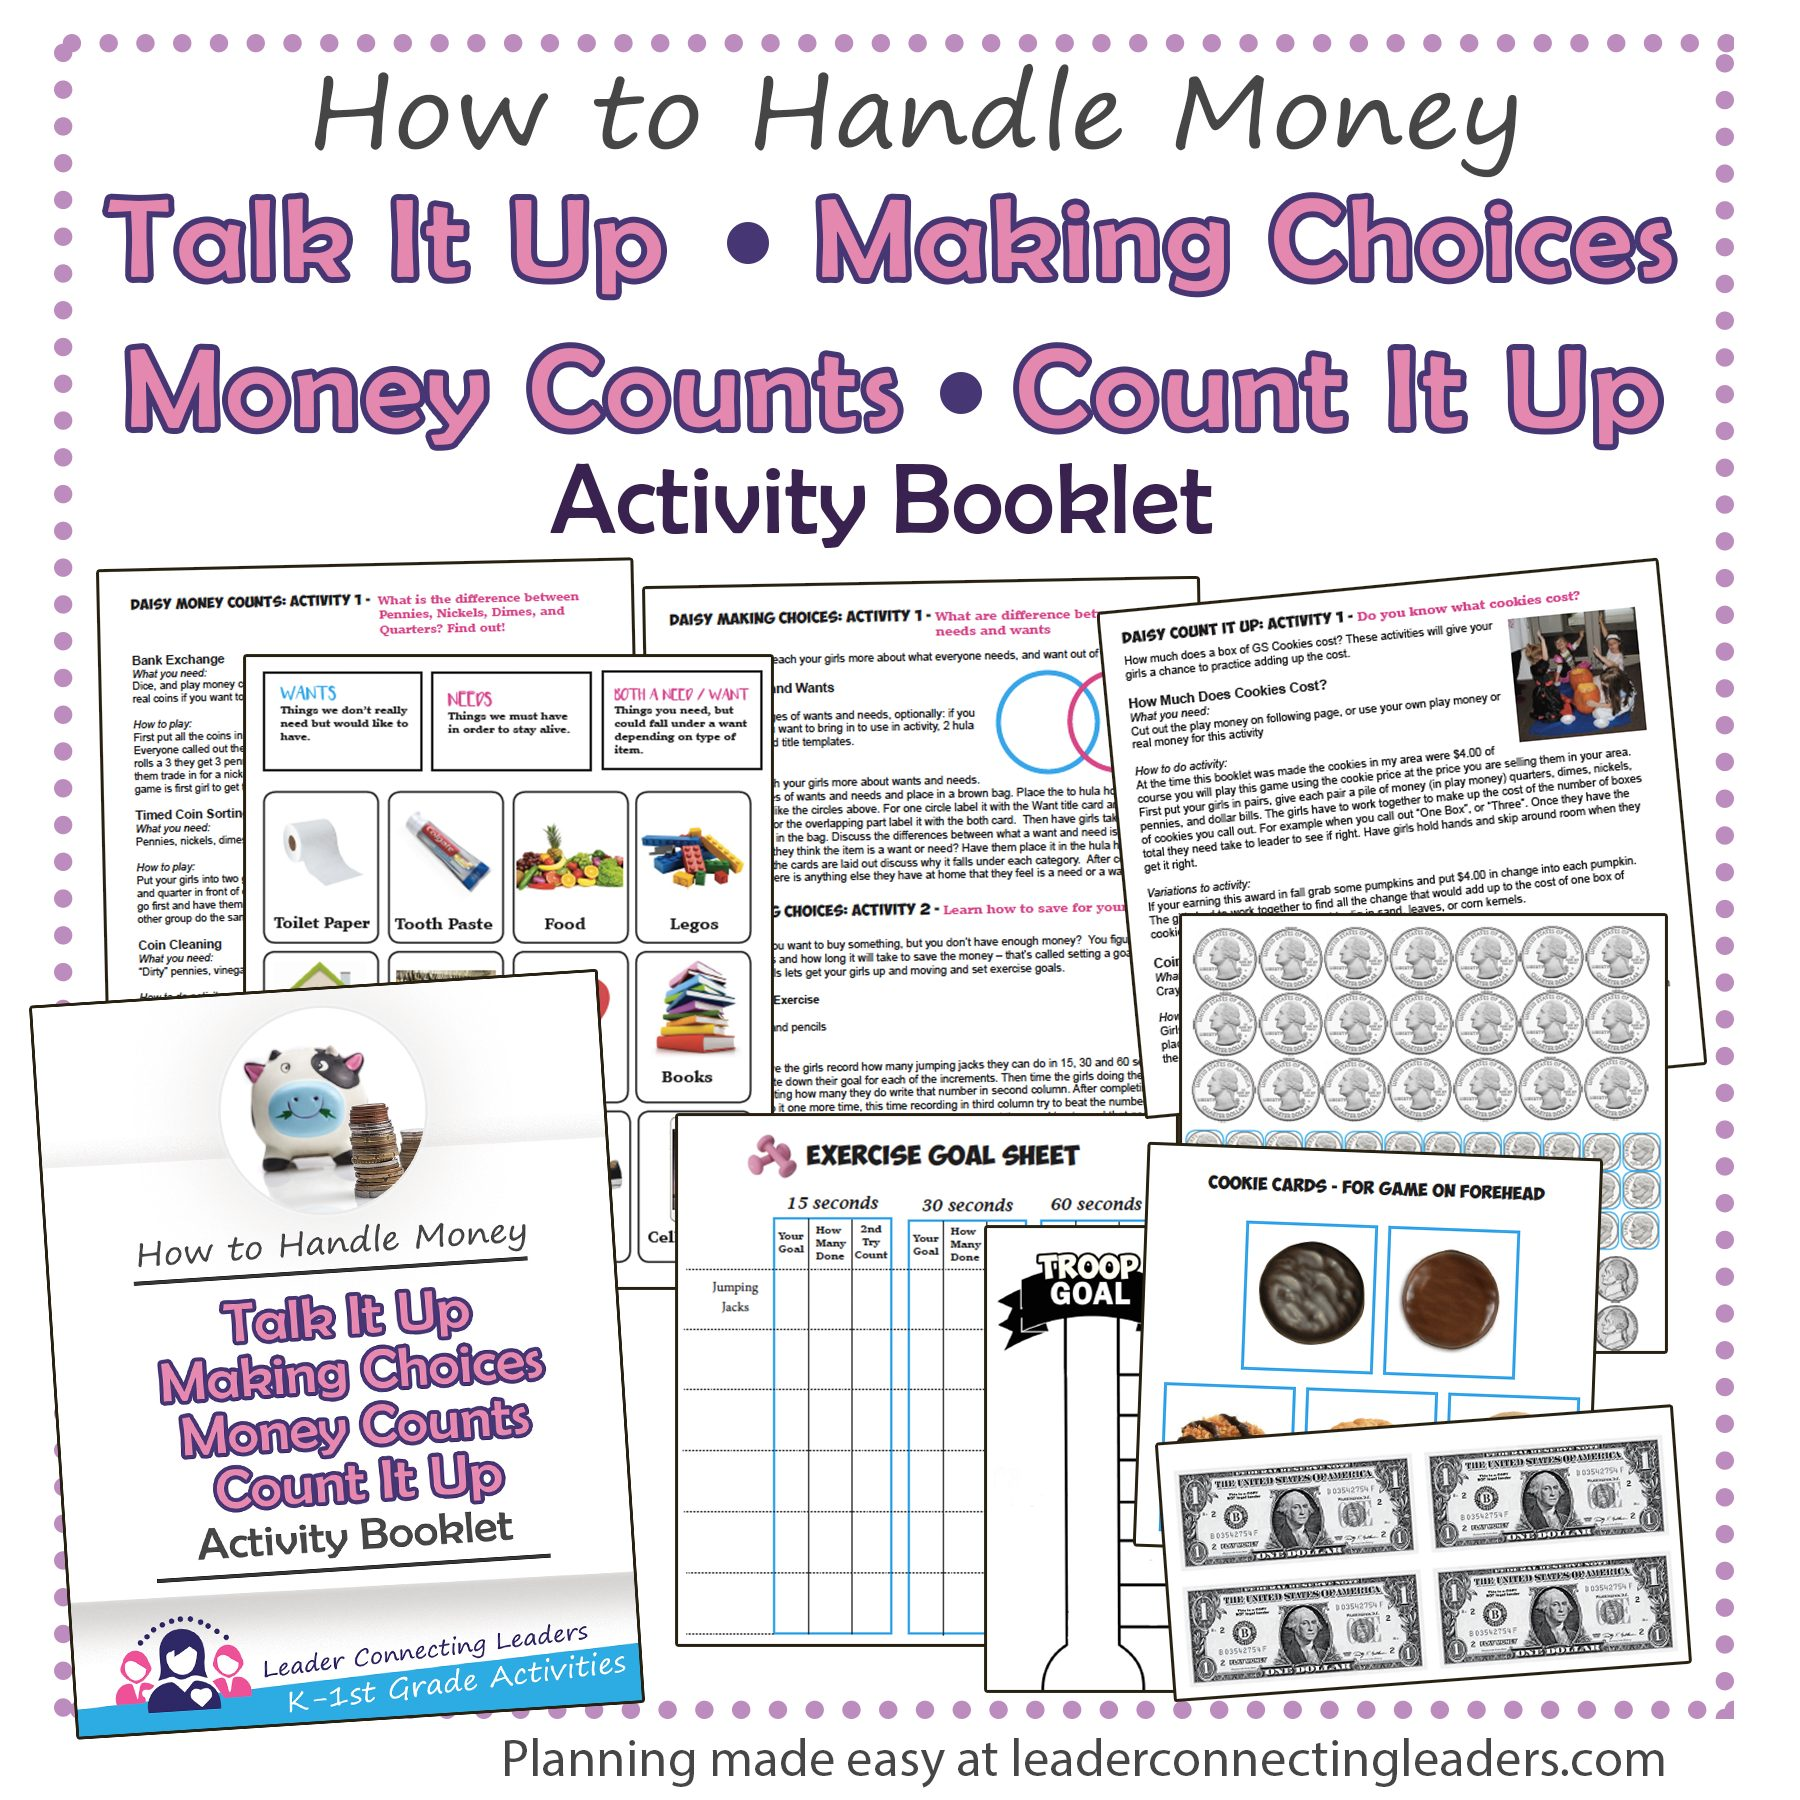 Talk It Up, Making Choices, Money Counts, Count It Up Daisy leaf activity booklet